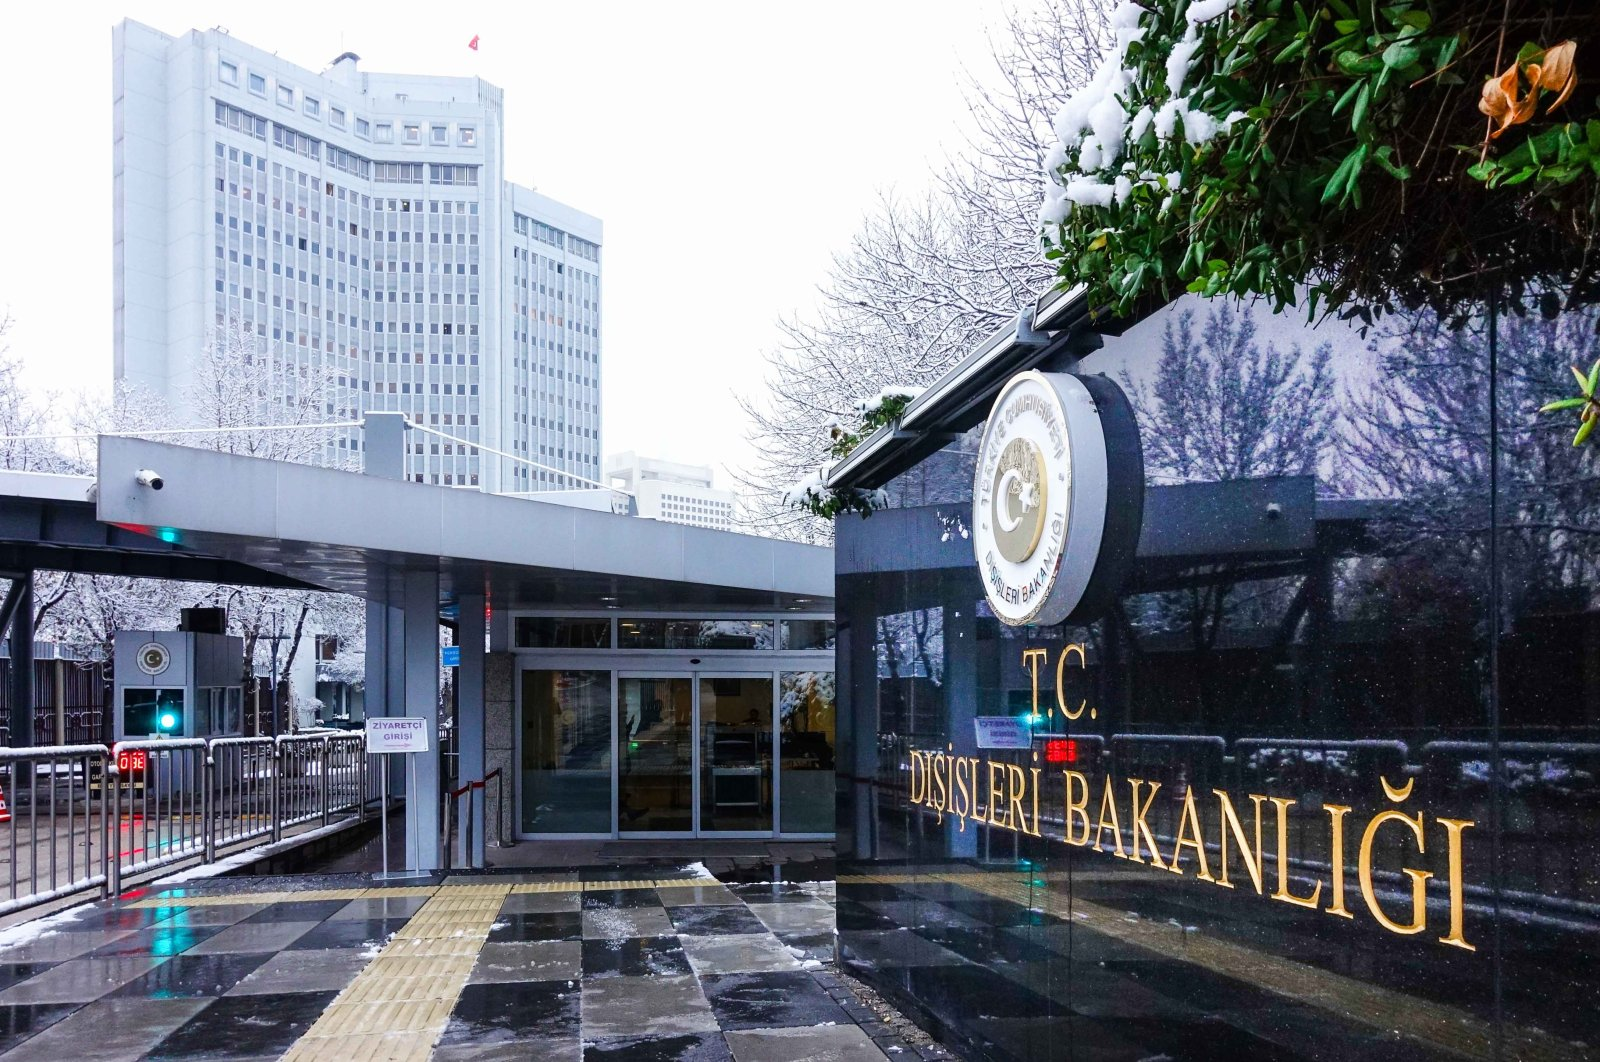 Ministry of Foreign Affairs building in Ankara, Turkey, Dec. 22, 2018. (Getty Images File Photo)